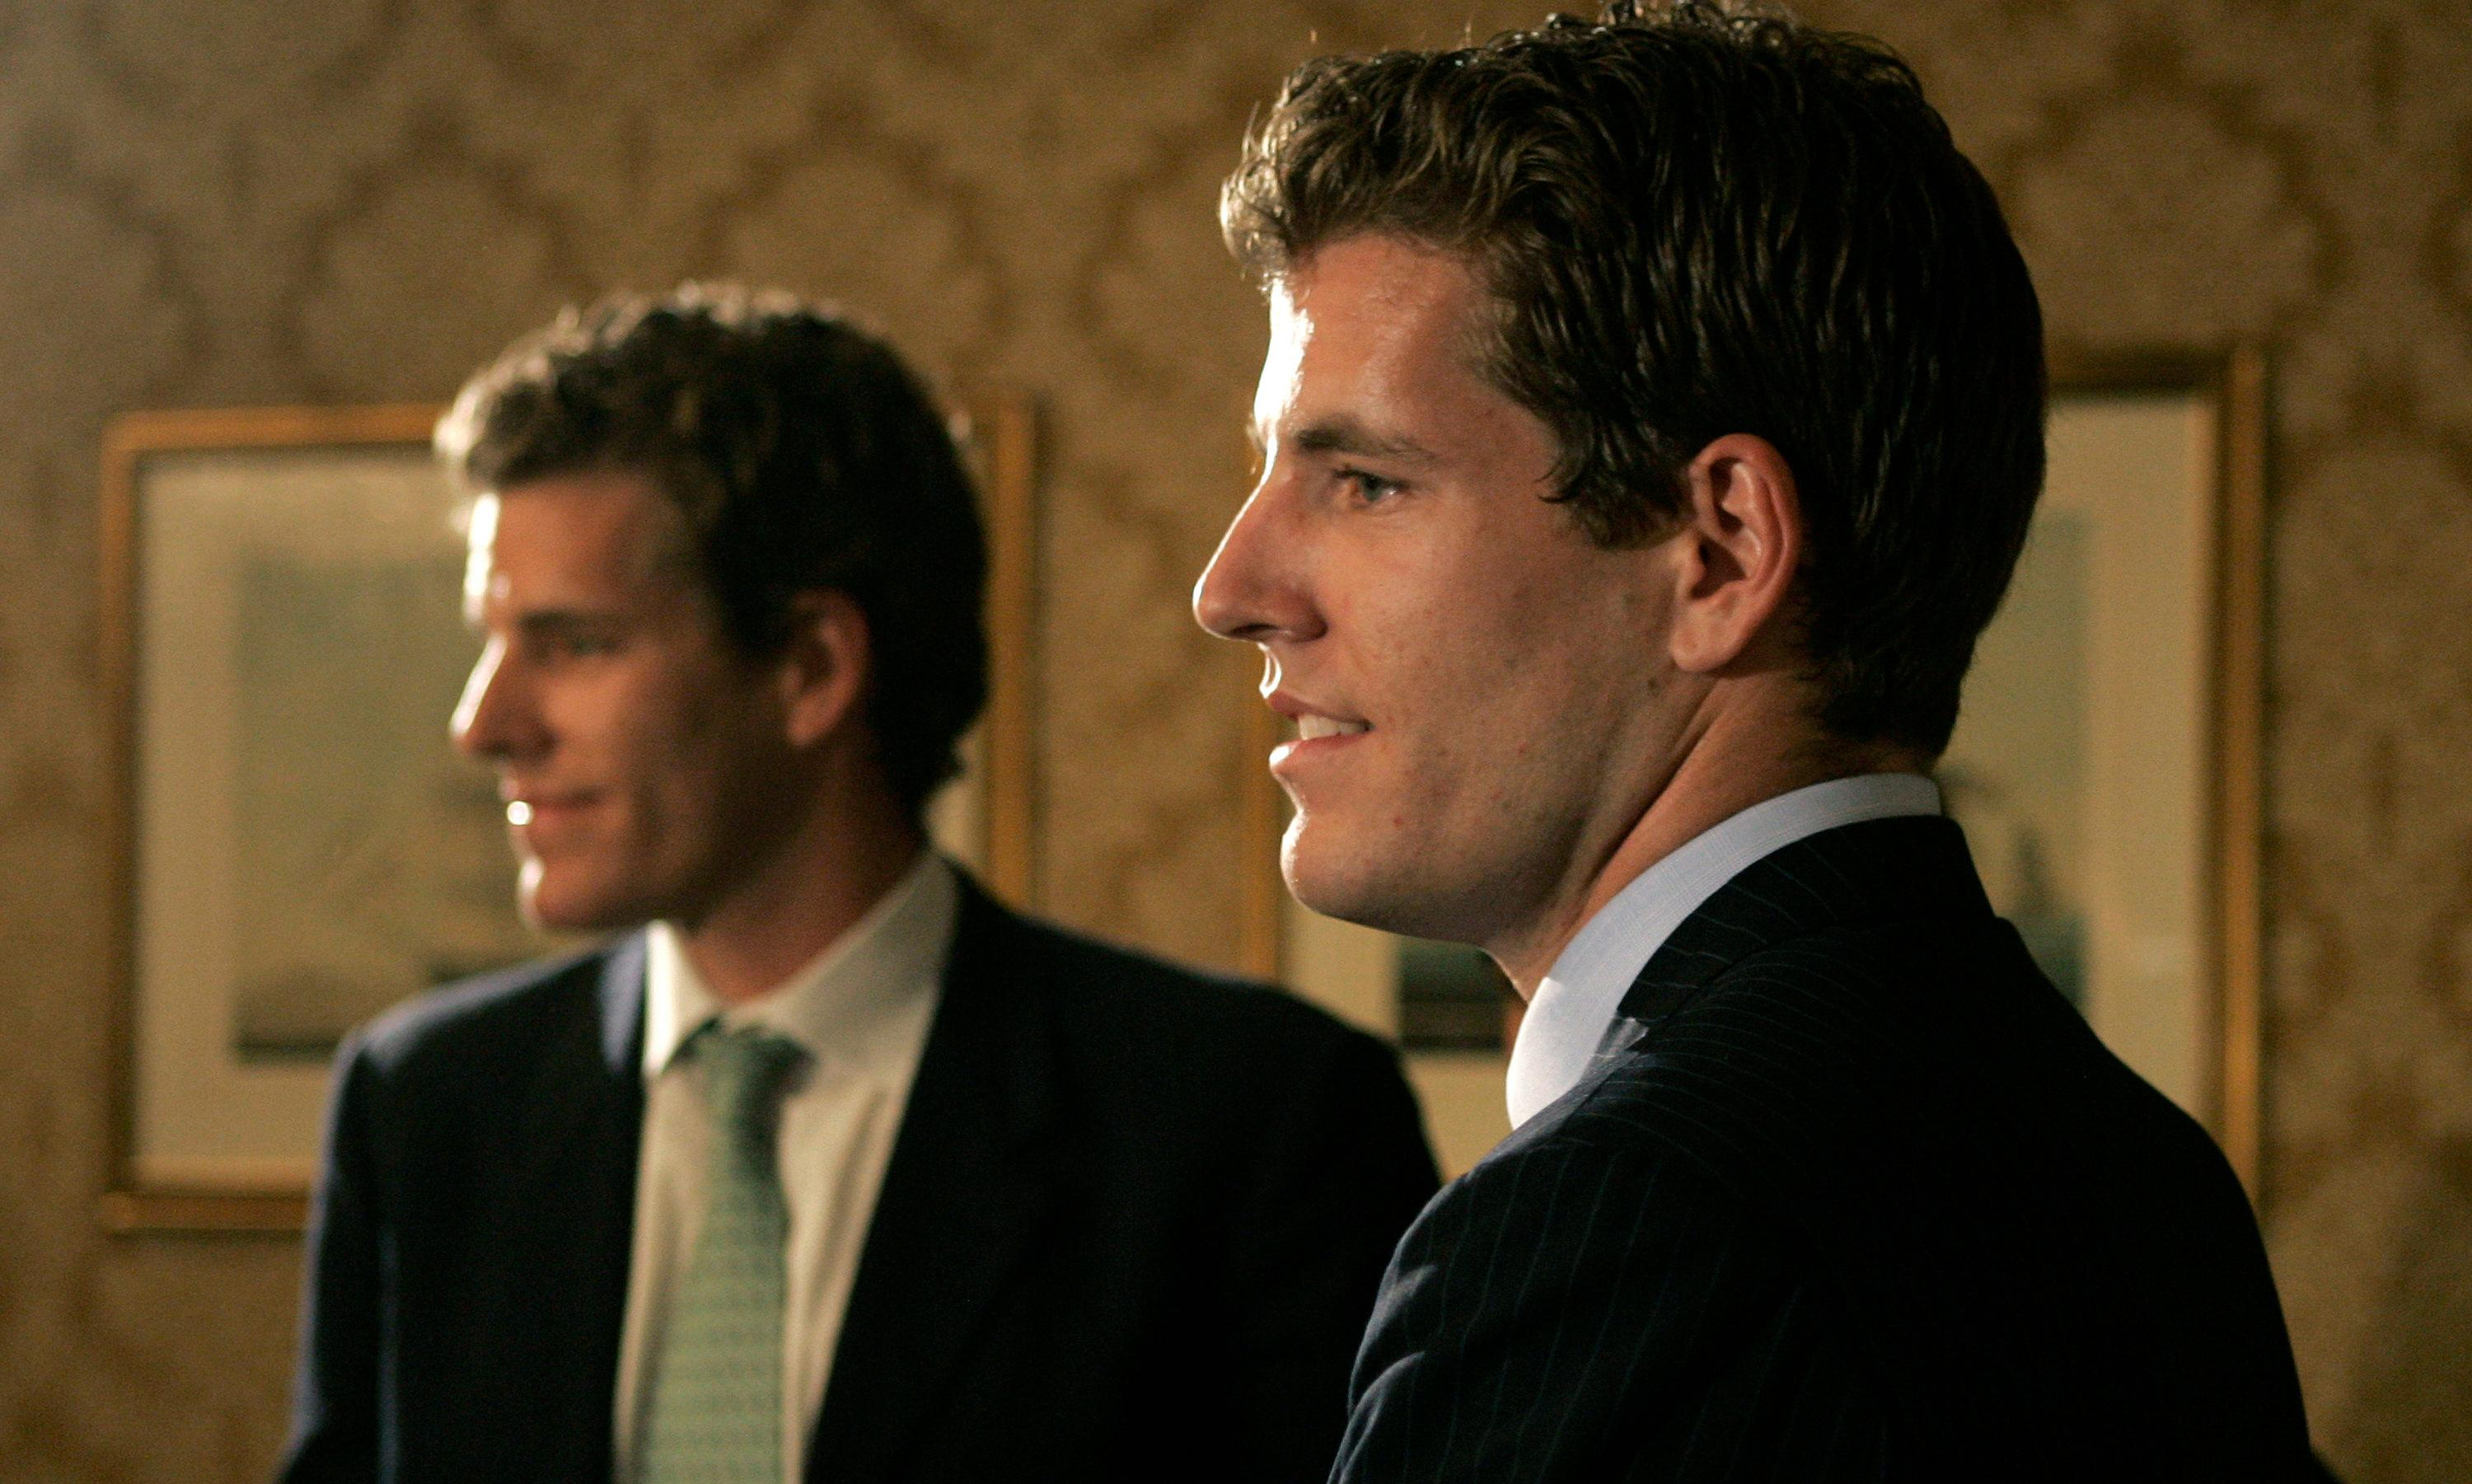 Bitcoin Billionaires by Ben Mezrich review – the tale of the Winklevoss twins